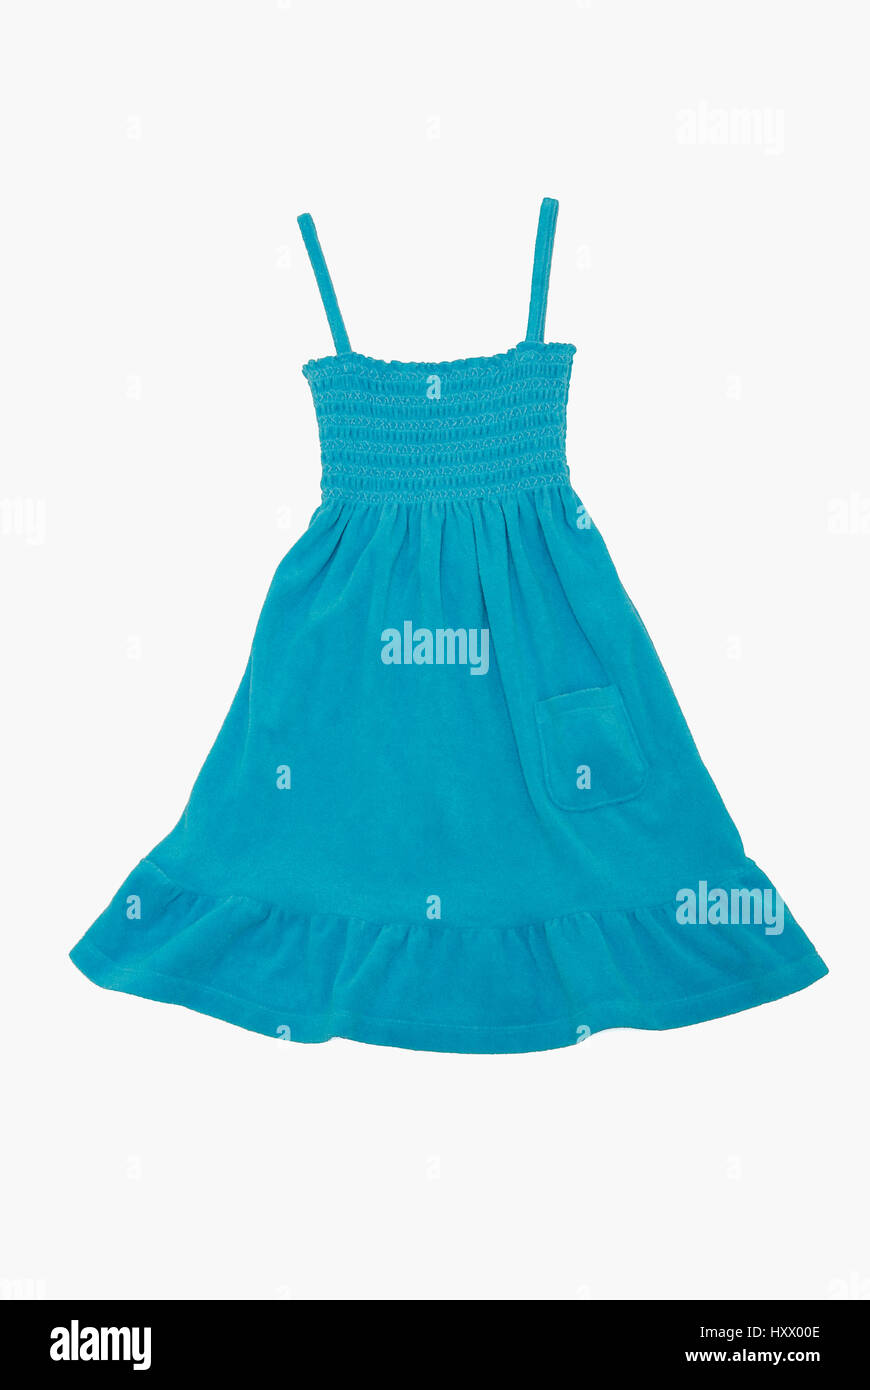 A blue sun dress - Stock Image